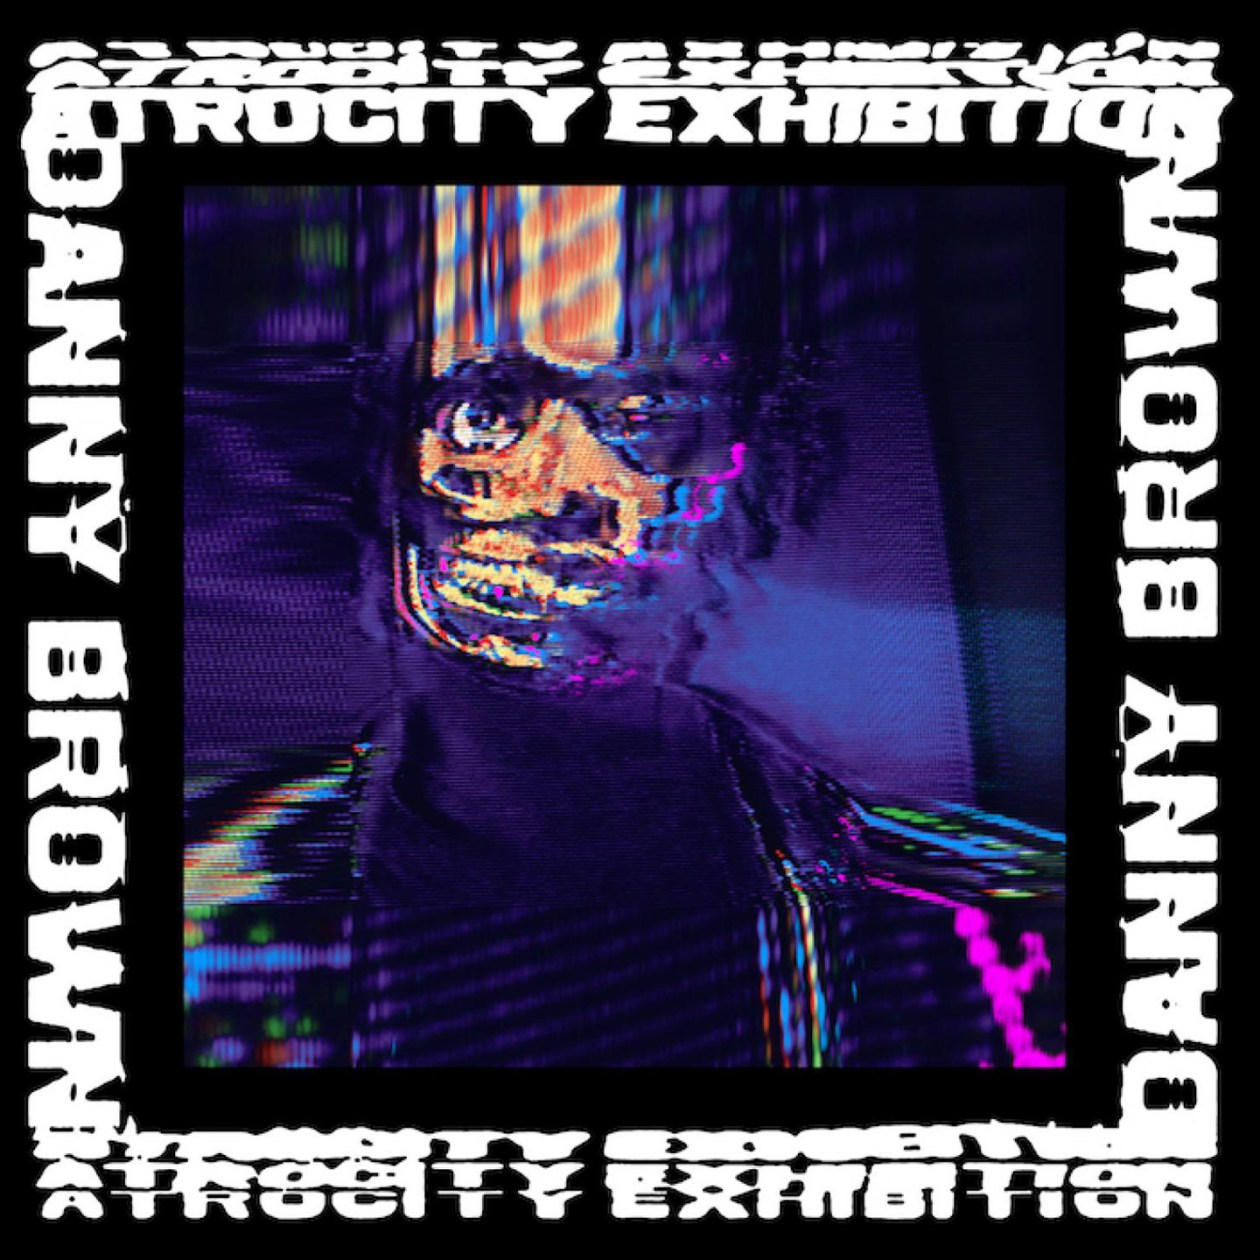 The Breakdown: Atrocity Exhibition, by Danny Brown